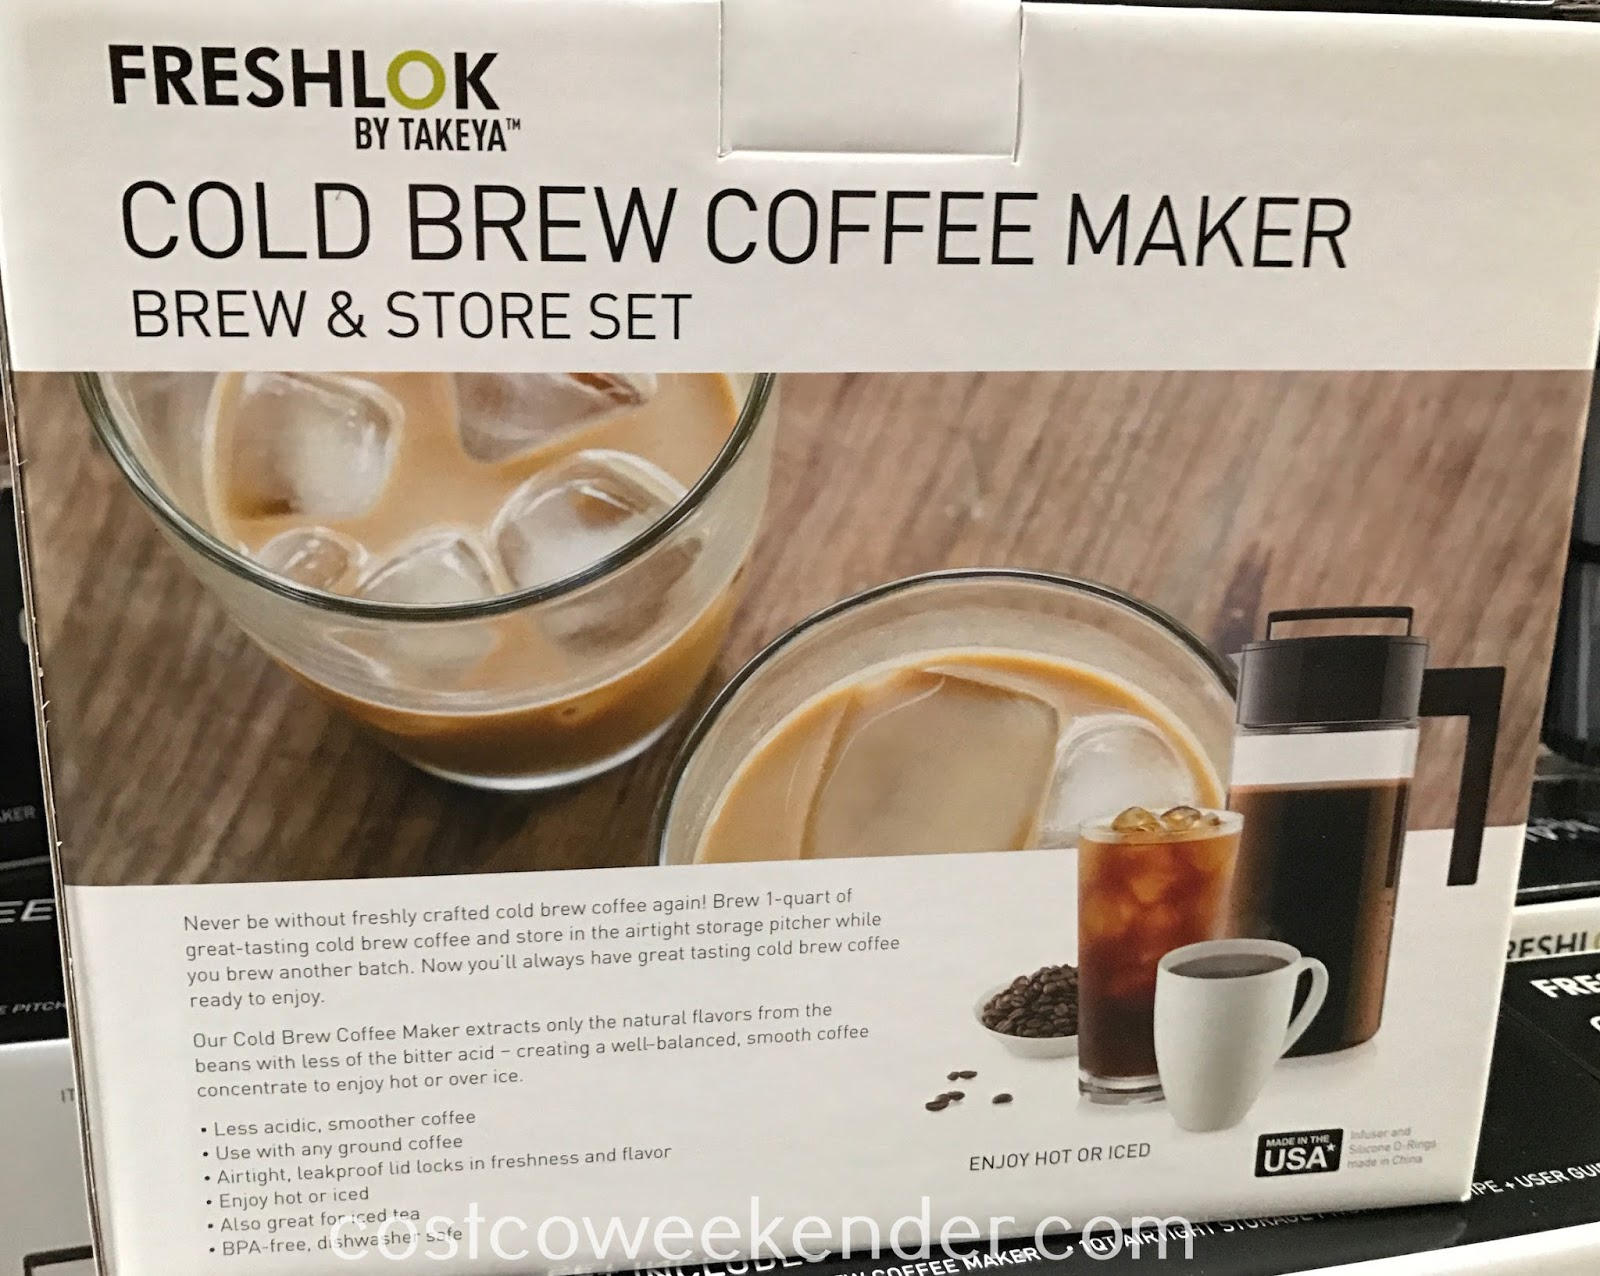 Takeya Cold Brew Coffee Maker Brew and Store Set: great for hot/cold coffee or tea